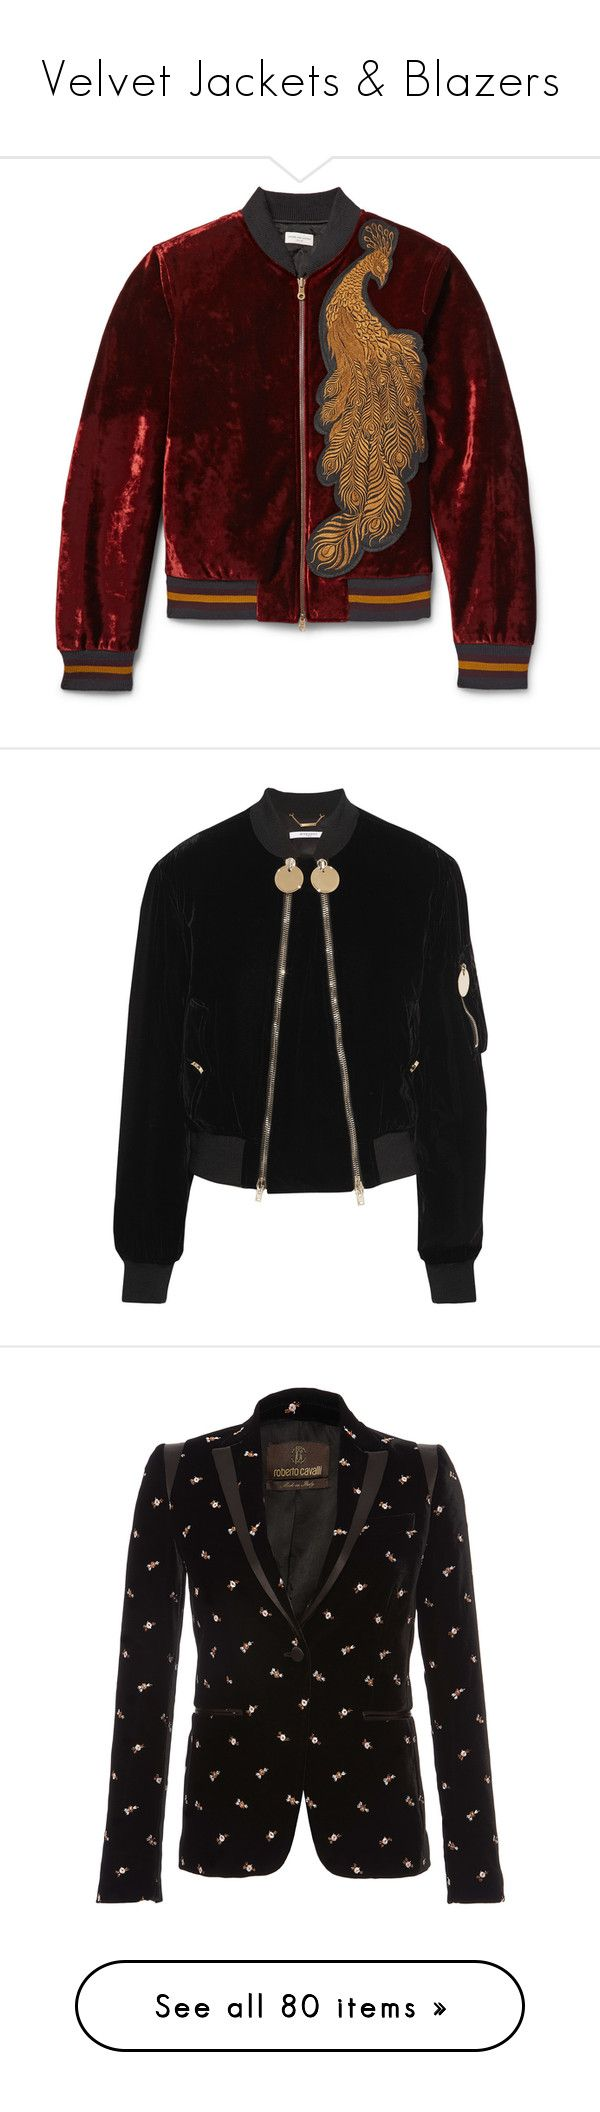 """Velvet Jackets & Blazers"" by romaboots-1 ❤ liked on Polyvore featuring men's fashion, men's clothing, men's outerwear, men's jackets, mens velvet bomber jacket, mens satin bomber jacket, mens quilted jacket, mens velvet jacket, mens quilted bomber jacket and outerwear"